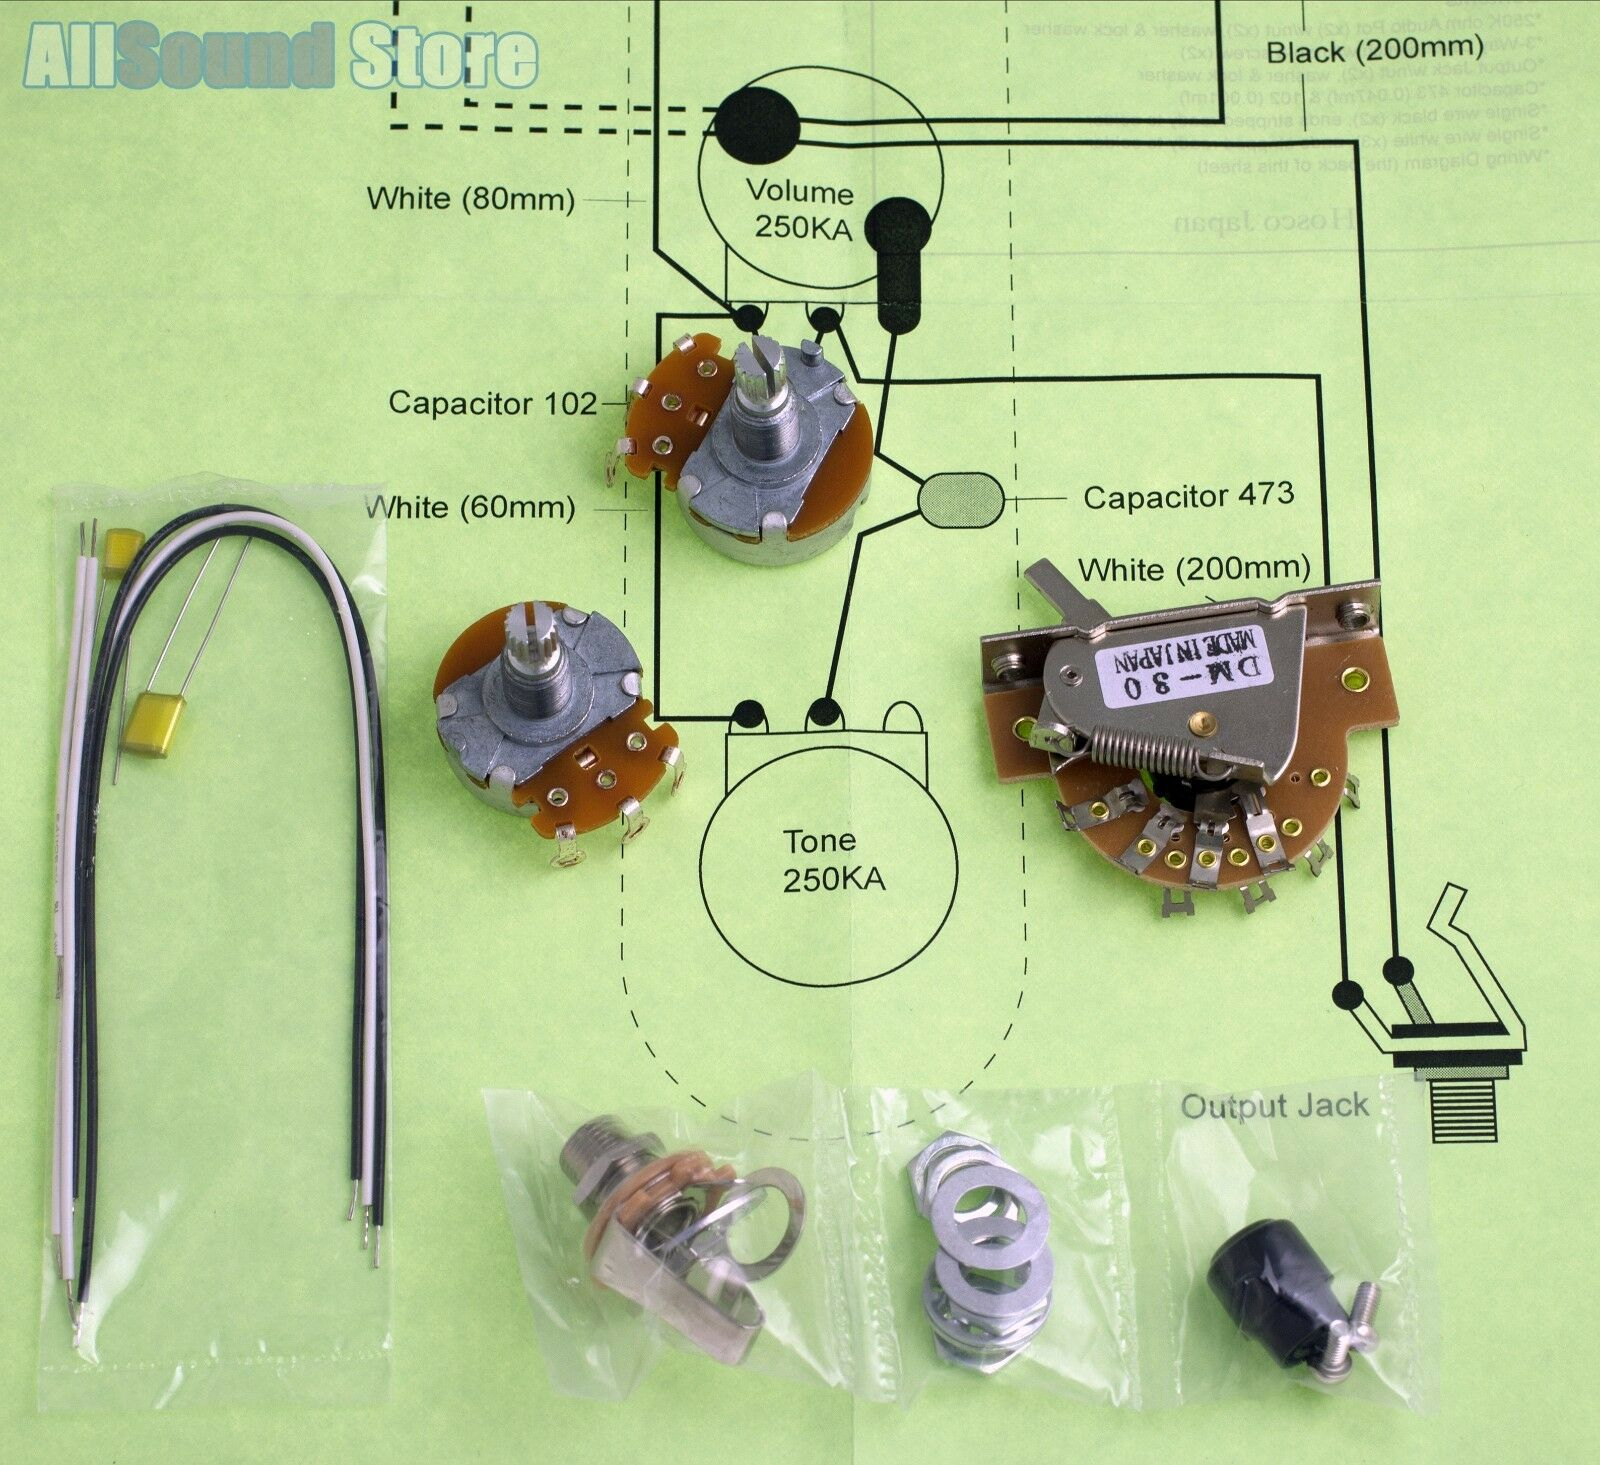 Wiring Kit for Import Fender Telecaster Tele COMPLETE telecaster kit wiring diagram guitars music production home  at reclaimingppi.co